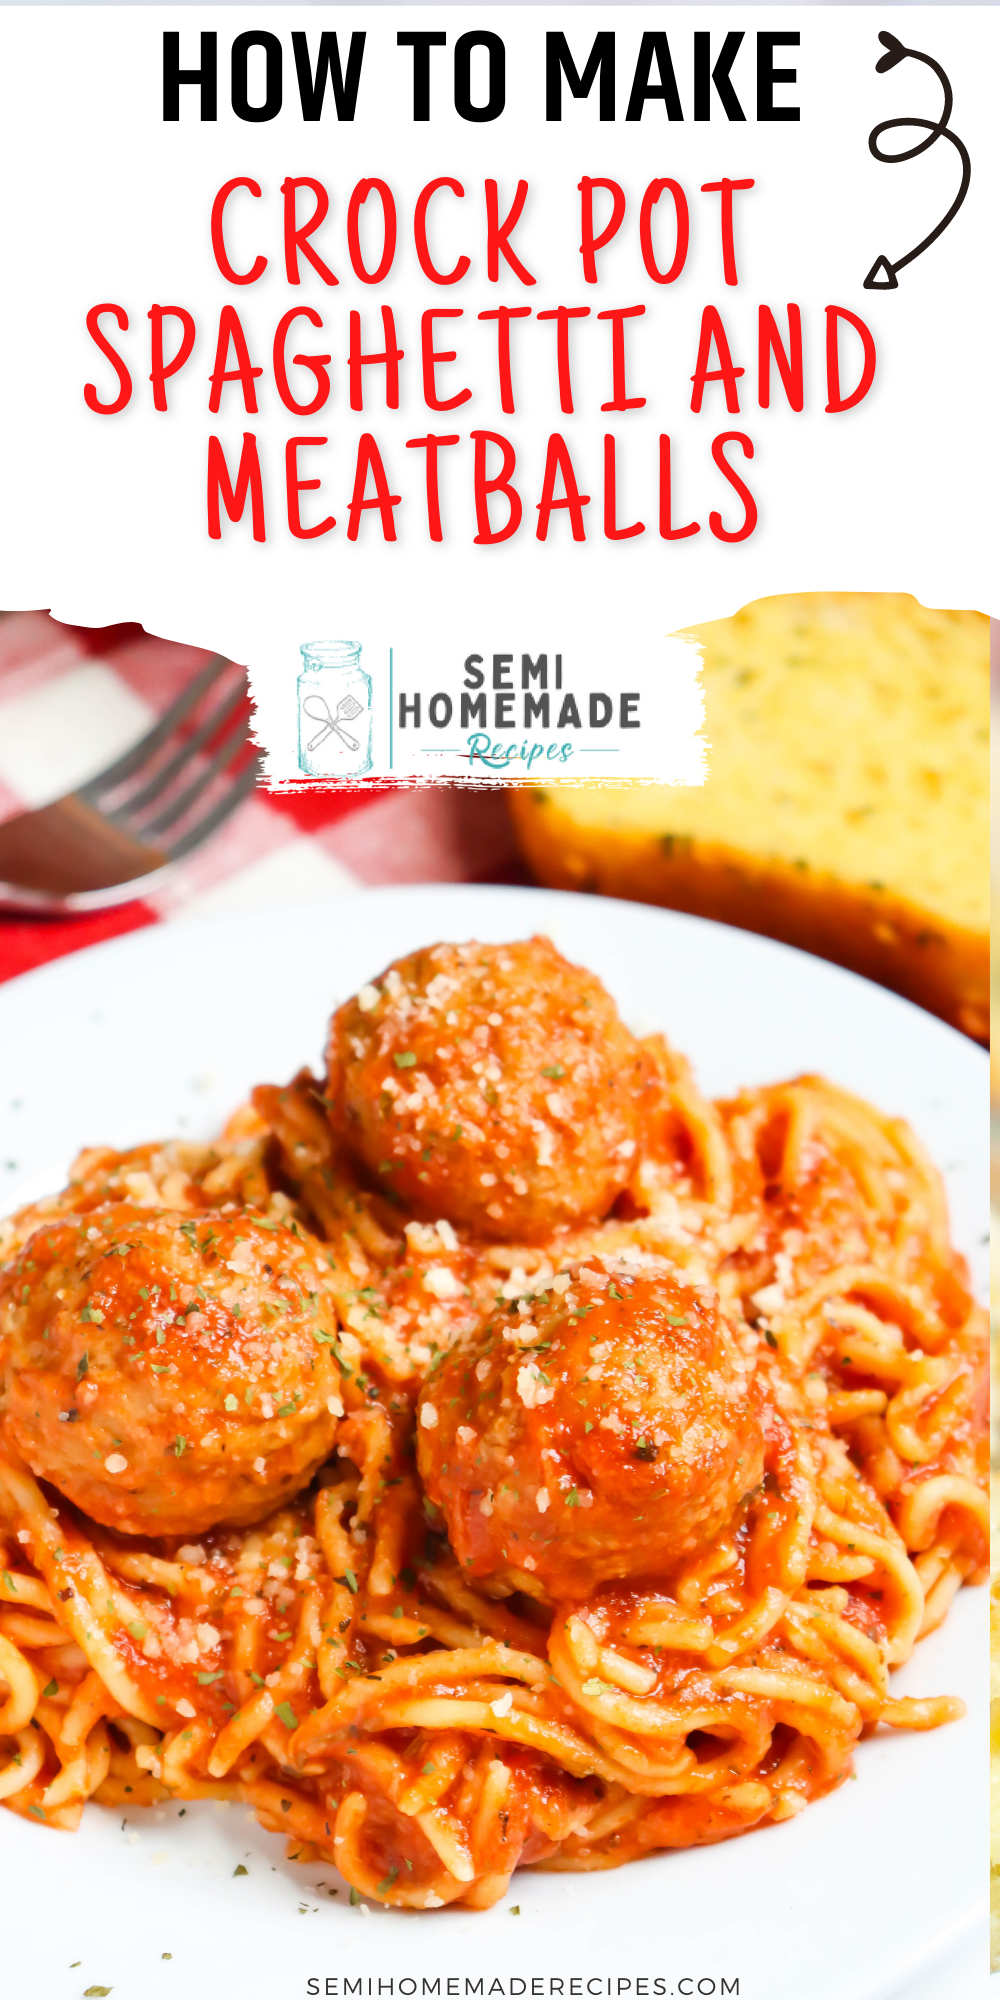 This tasty Crock Pot Spaghetti and Meatballs uses pantry and freezer items to make a fantastic meal that takes hardly any work to toss together!